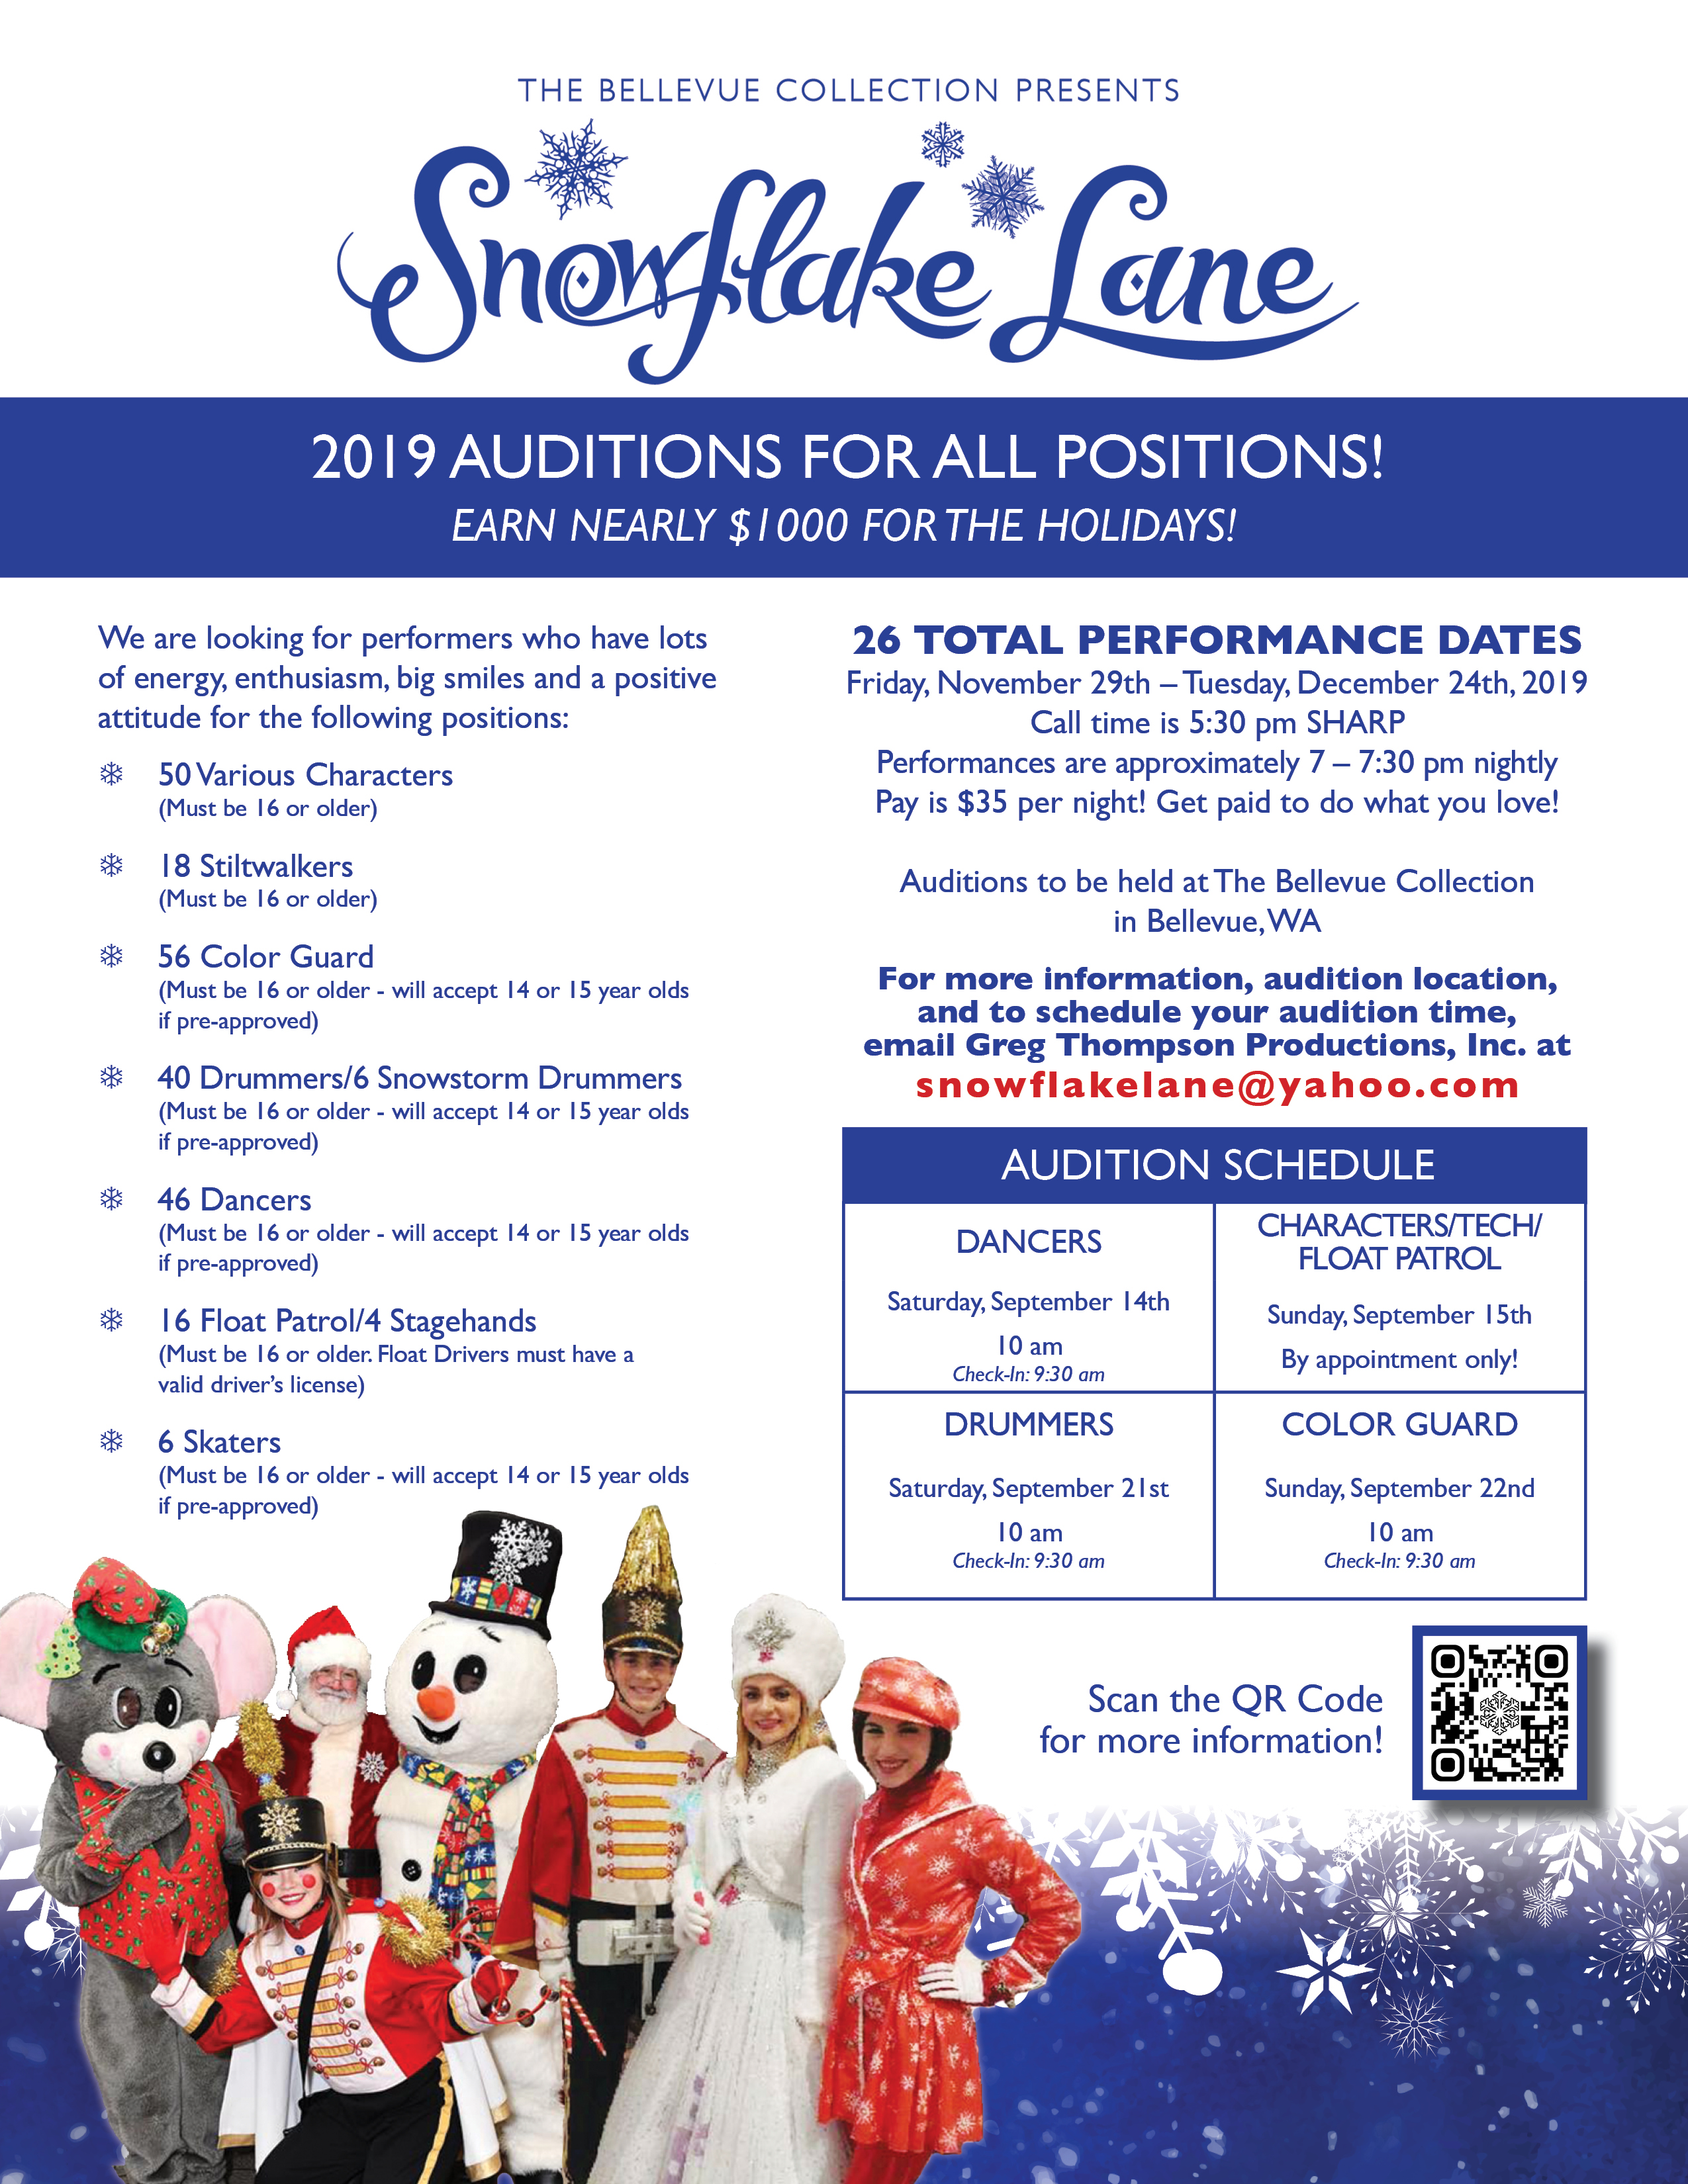 Snowflake Lane 2019 Auditions | Bellevue.com